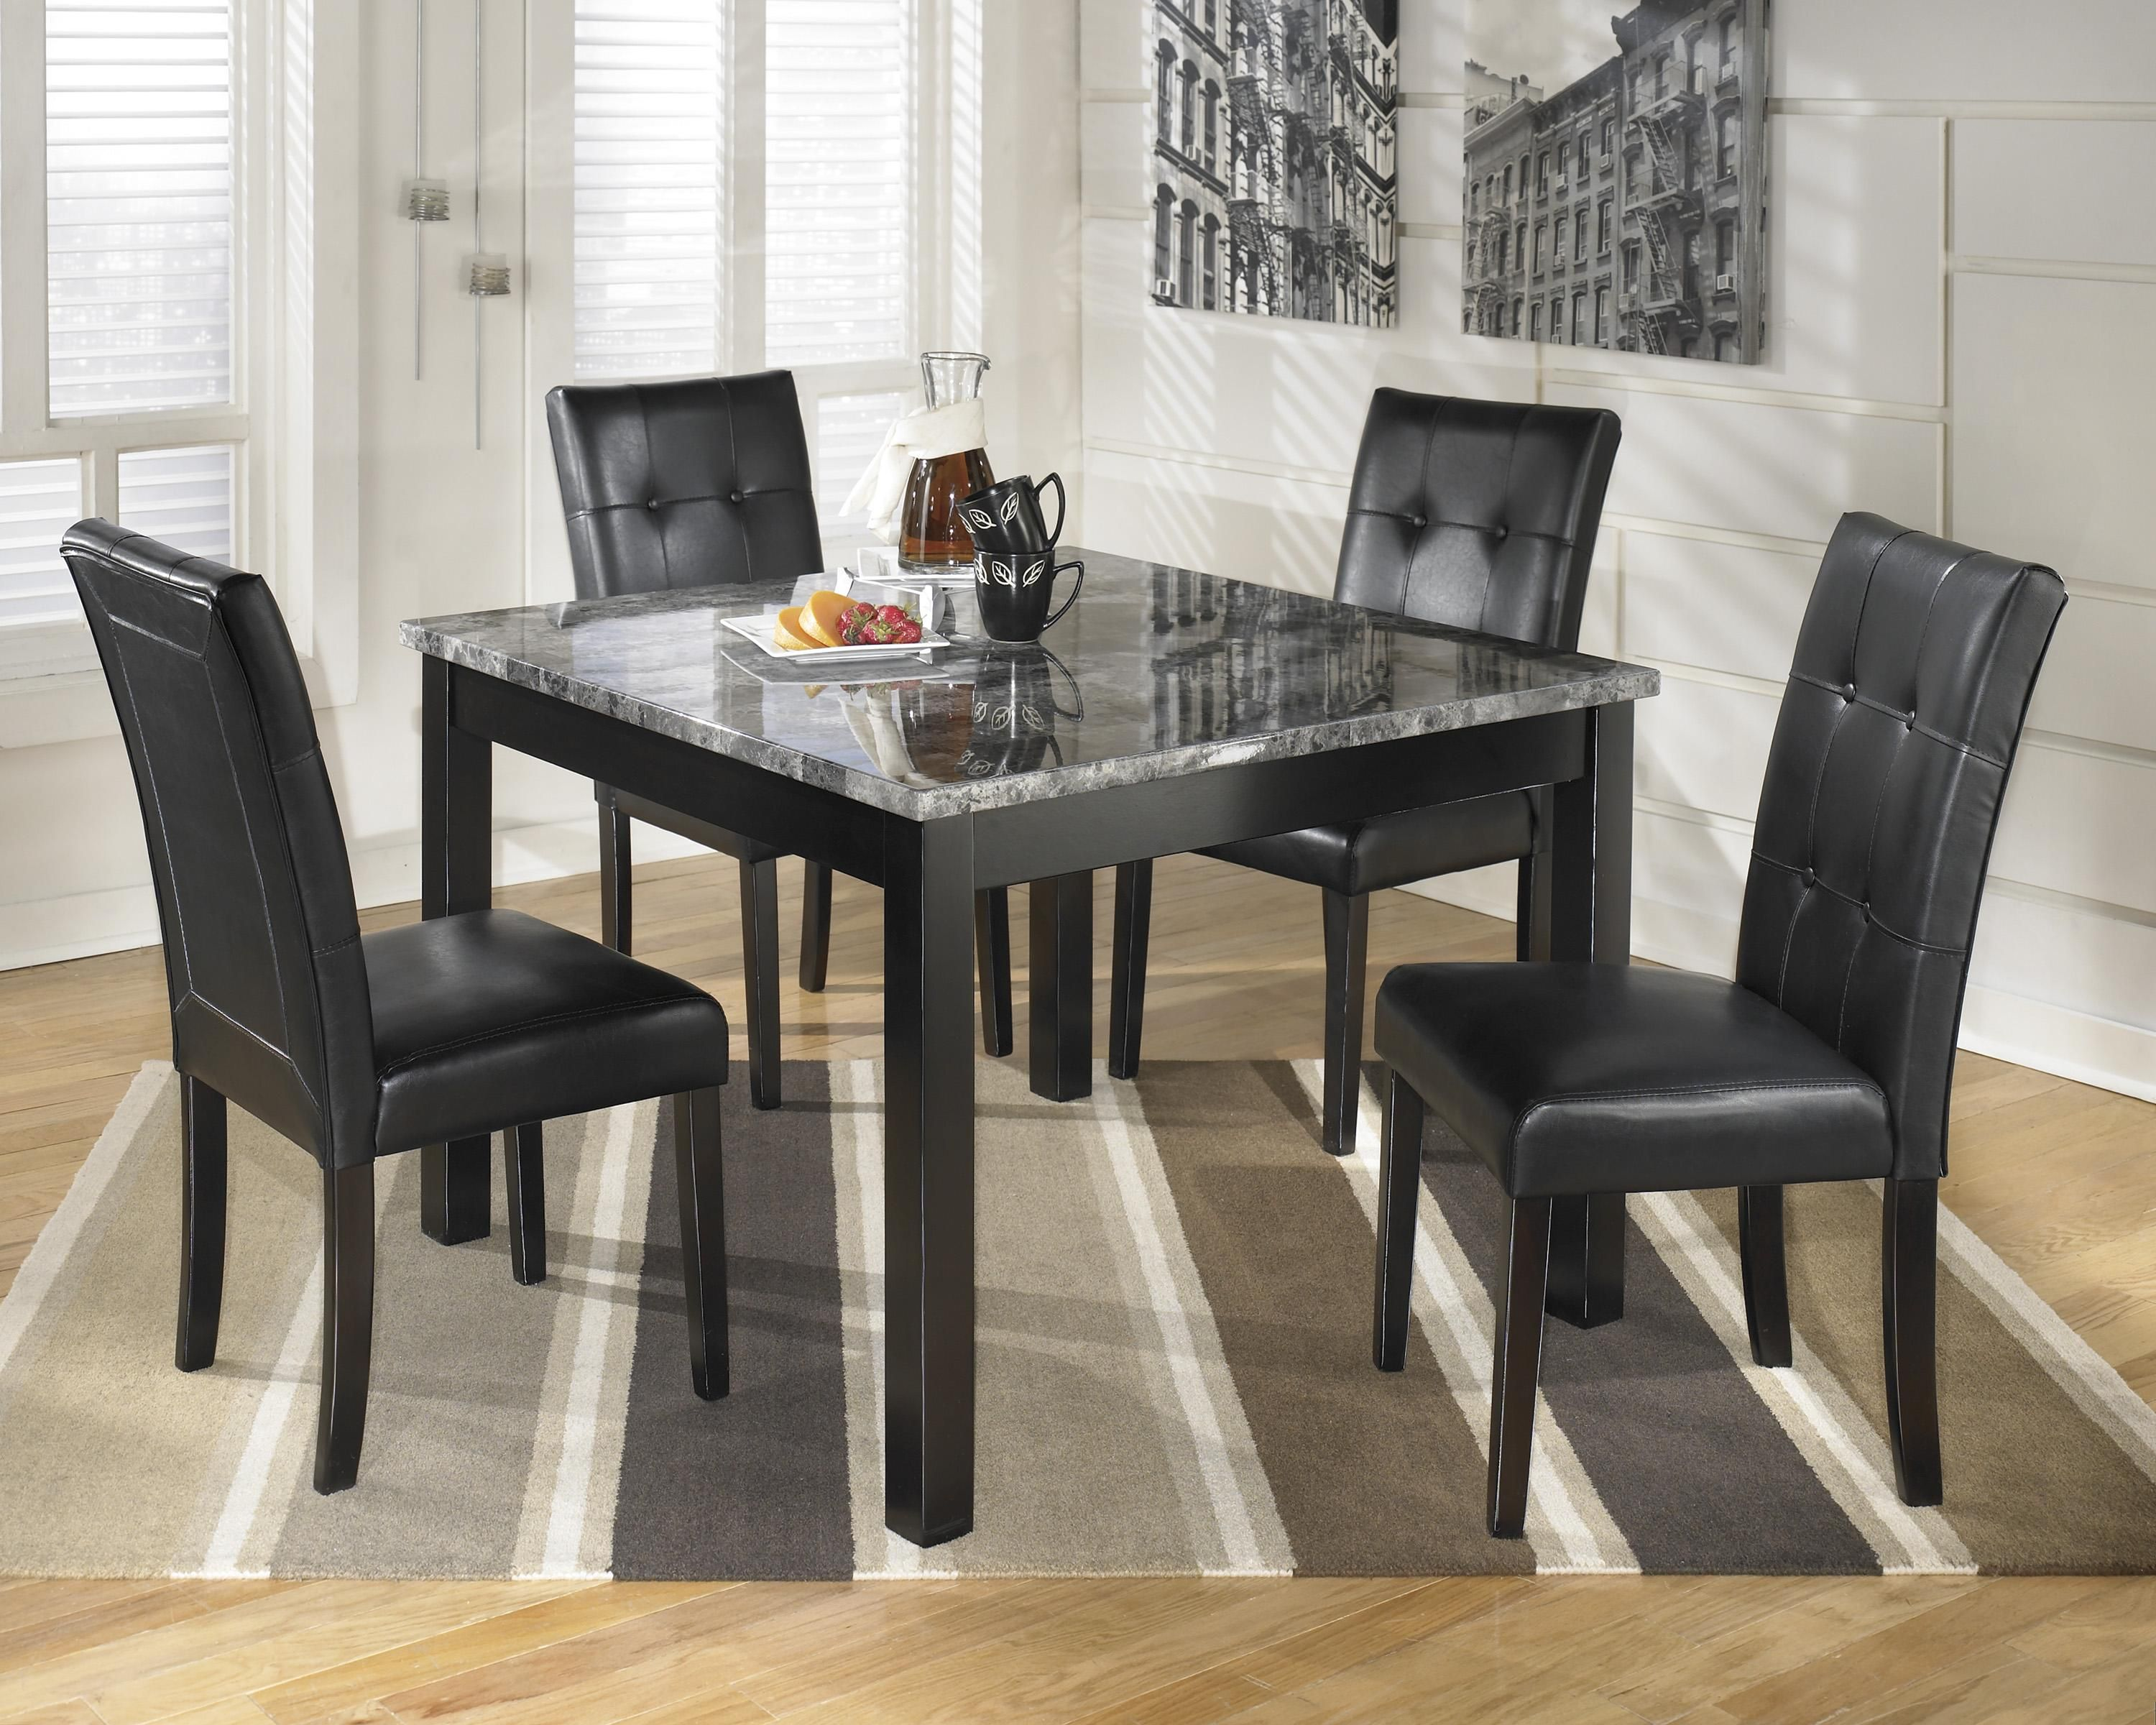 Marlo Furniture Dining Room Sets